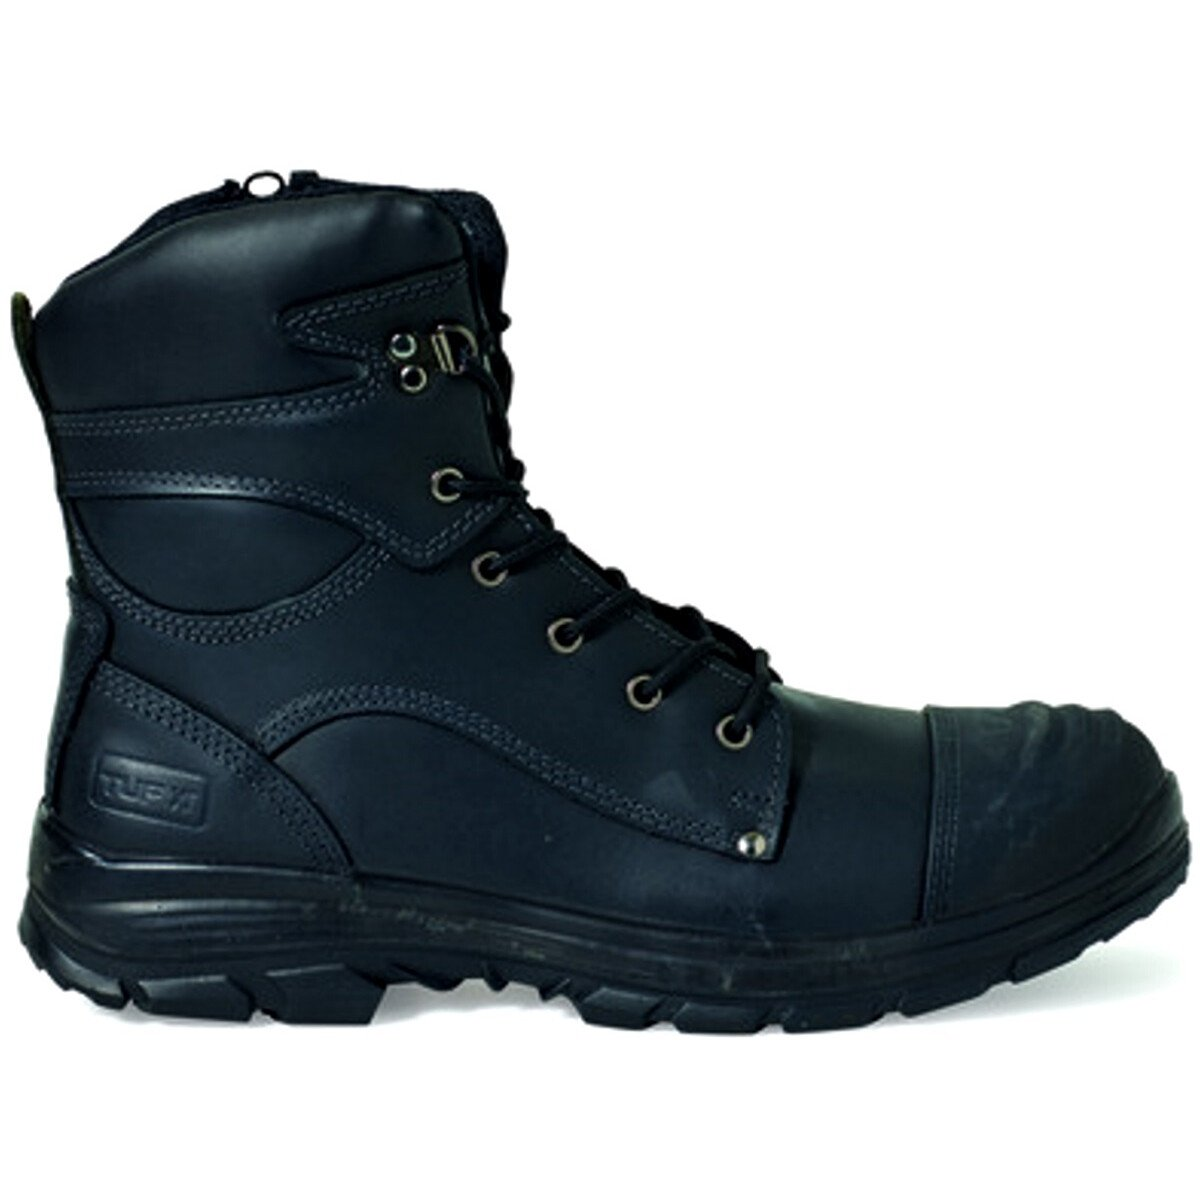 Tuf 100207 Marshall 8.5'' Hi-Leg Zip Black Leather S3 WRU HRO SRC Safety Boot with Midsole